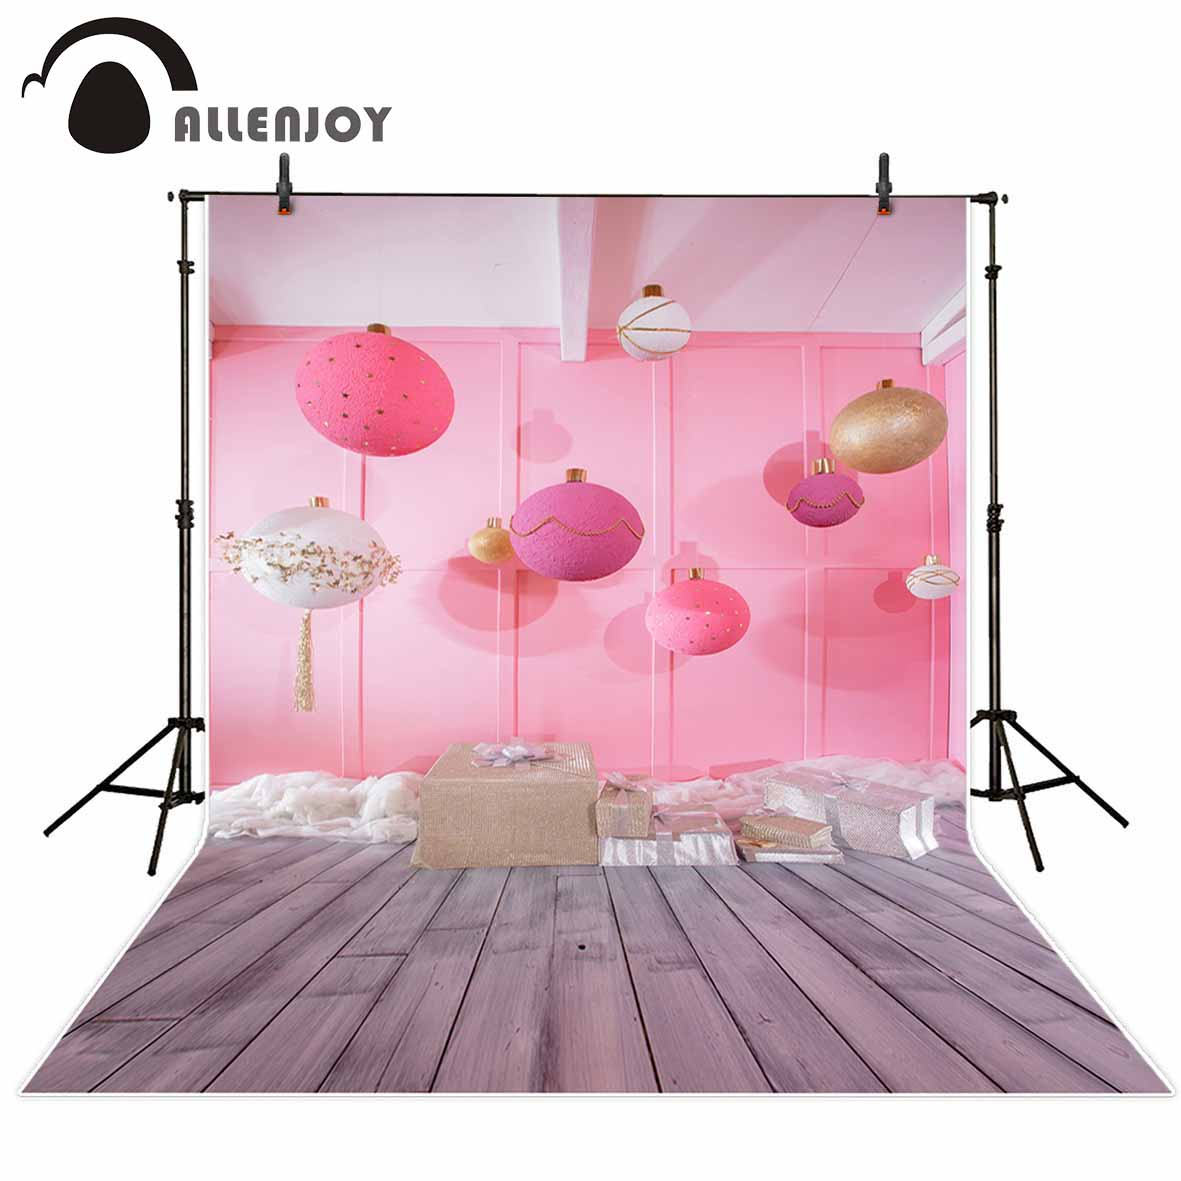 Allenjoy photography backdrops Large balls on a pink background in room decorating gift box on gray wooden floor photocall allenjoy photography backdrops library bookshelf school student study room books photocall baby shower